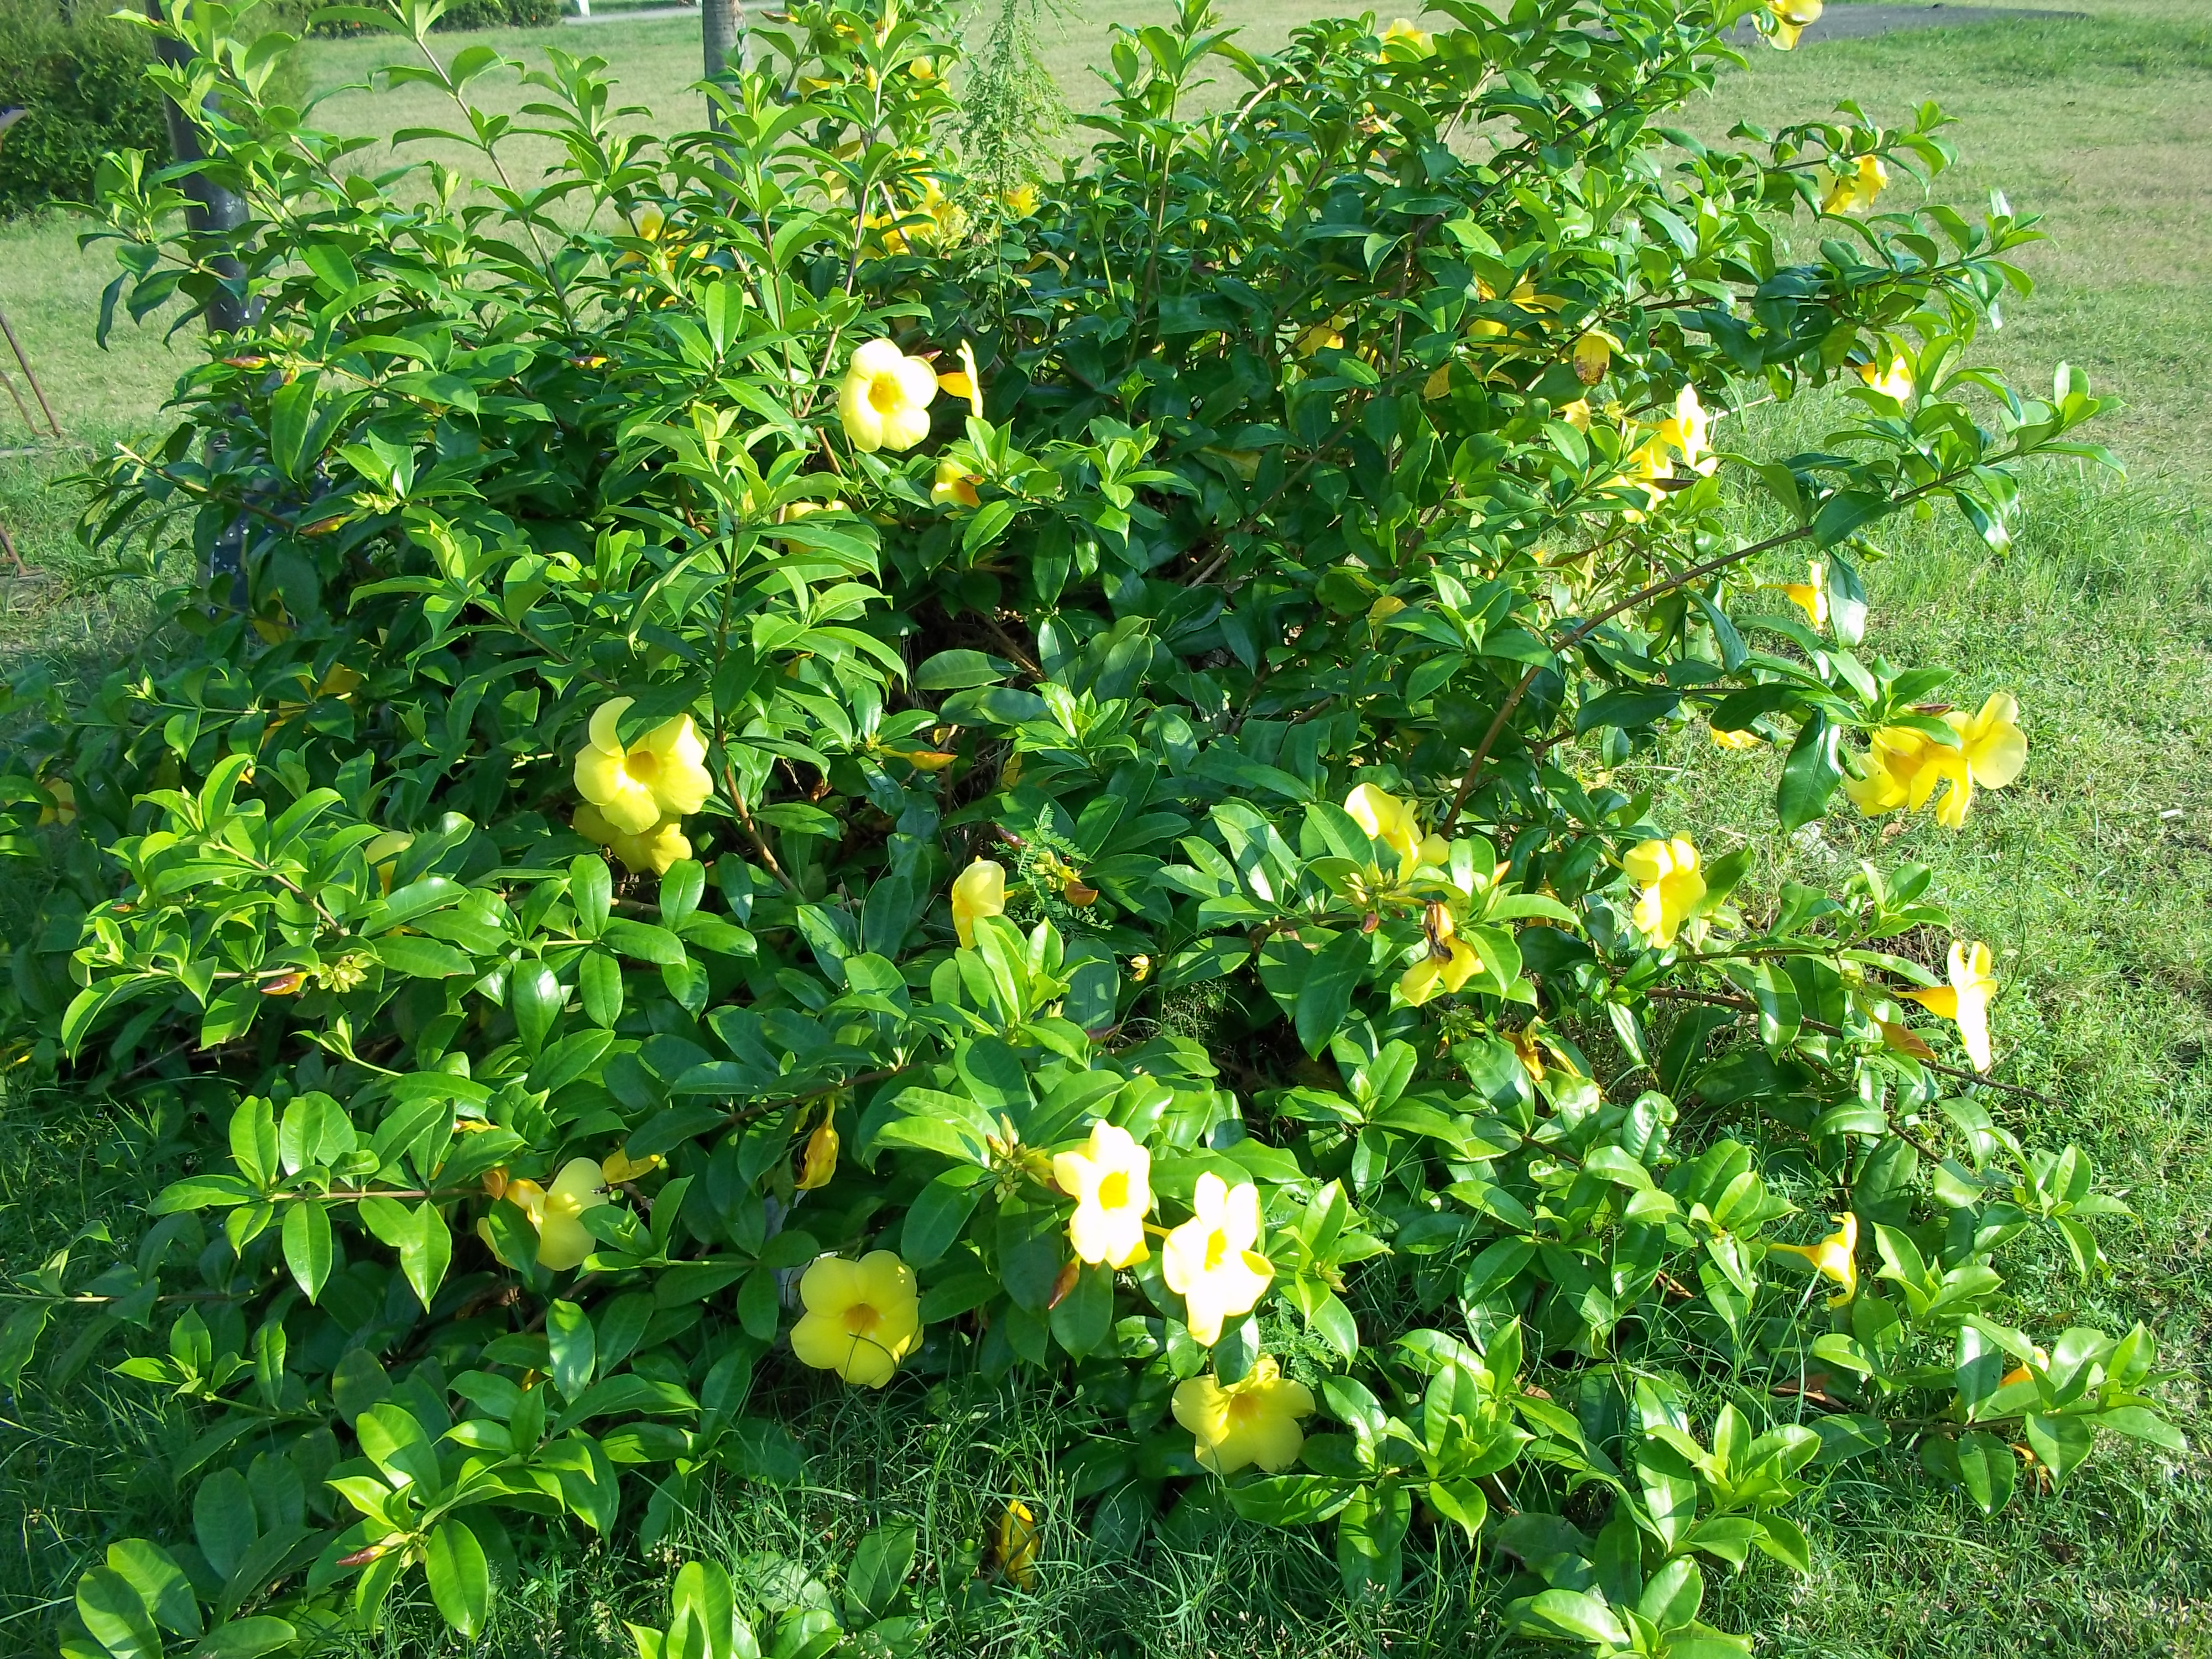 Yellow bell allamanda cathartica spots and greens this flowering plant grows mightylinksfo Images